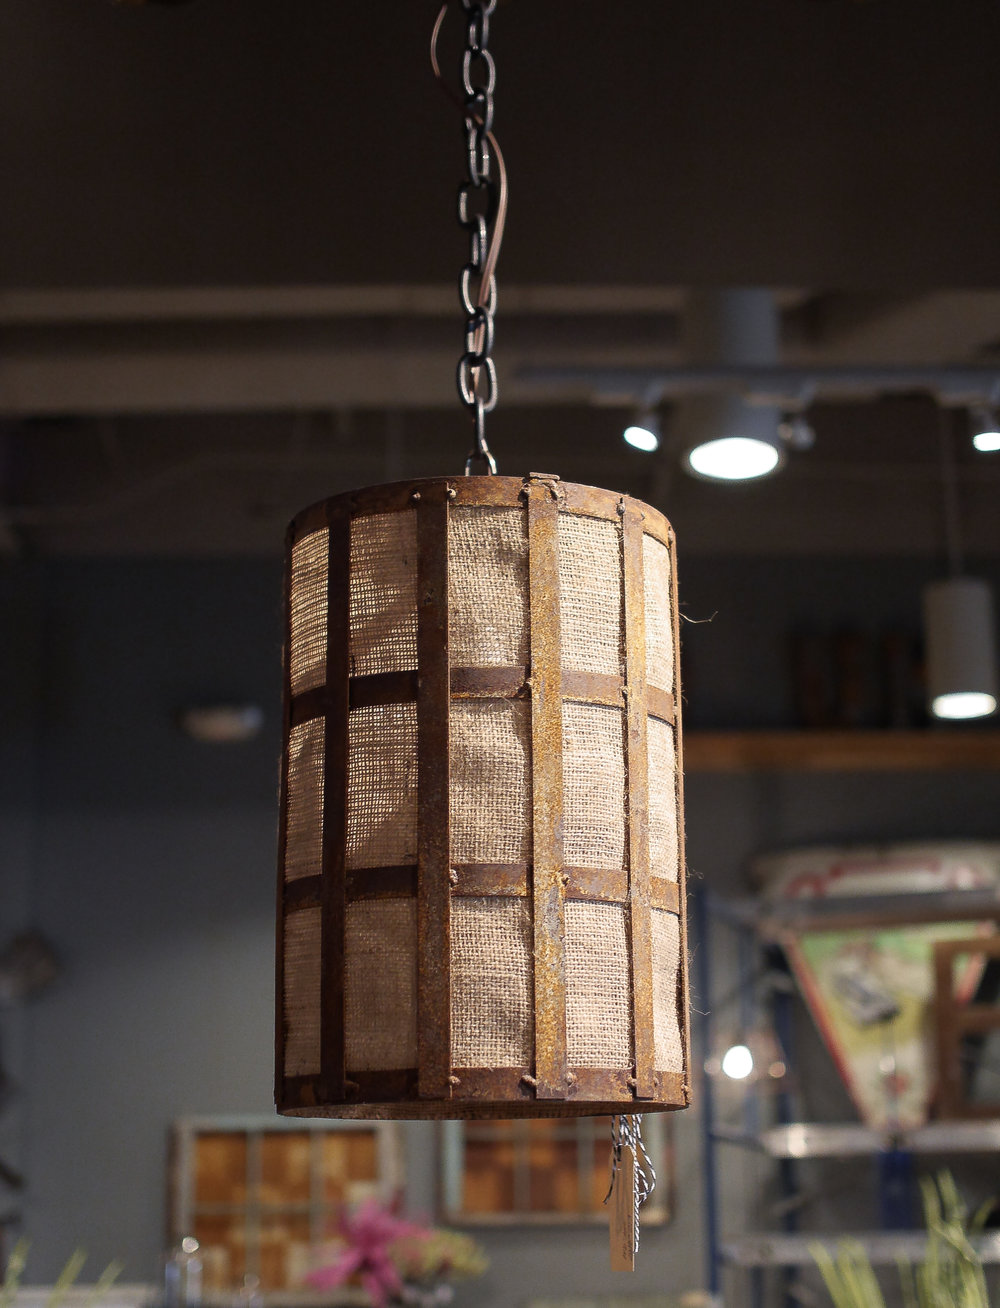 Burlap Cyndicular Rusitc Light.jpg